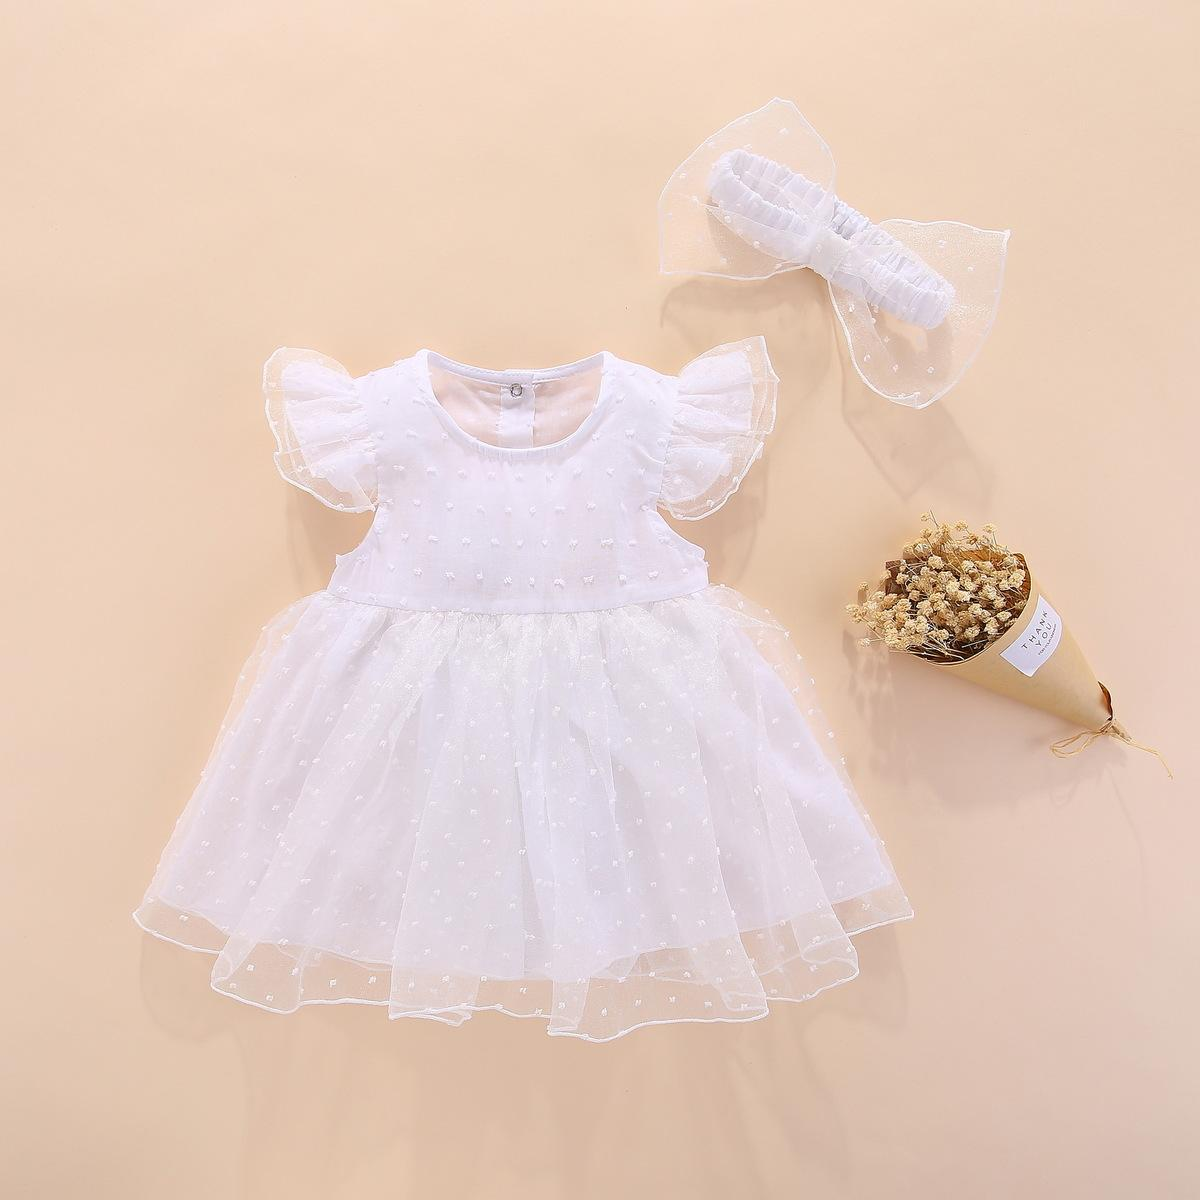 e246b82ab 2019 Newborn Baby Dress Lace Set 3 Months Baby Clothing My First Birthday 6 Baby  Clothes Girl Summer Princess Tutu Romper Bodysuit Y18102007 From Gou07